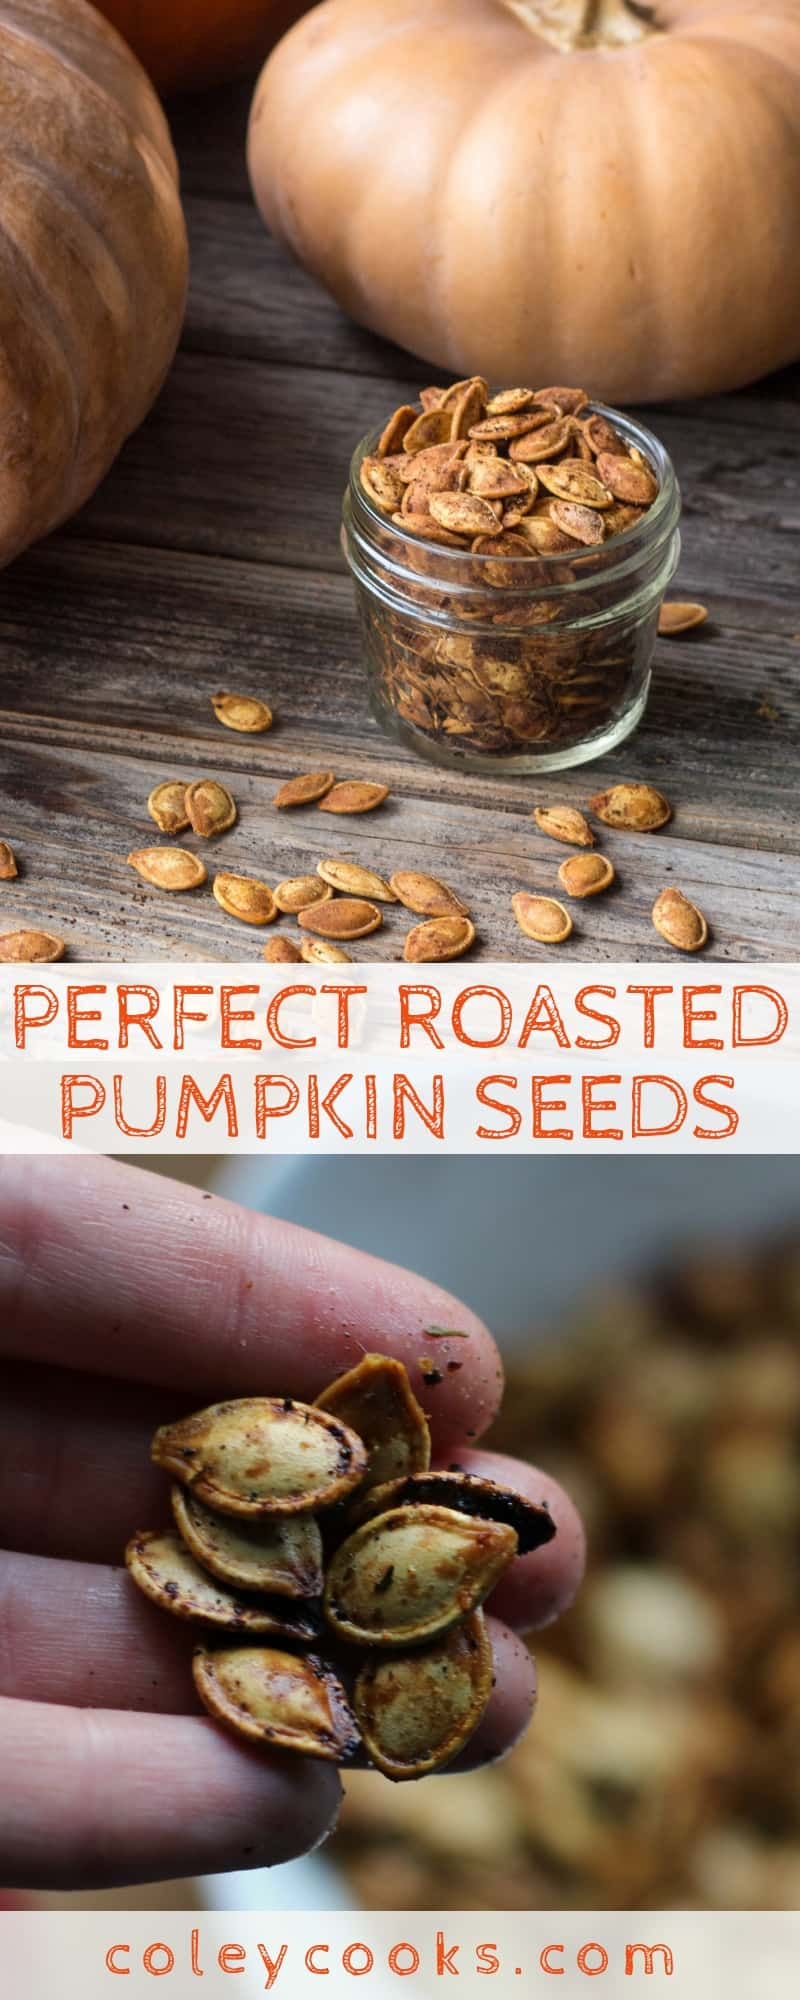 PERFECT ROASTED PUMPKIN SEEDS   This foolproof way for roasting pumpkin seeds produces the crunchiest, best pumpkin seeds ever! #pumpkin #pumpkinseeds #pumpkincarving #recipe #method #technique #blanching #seeds   ColeyCooks.com